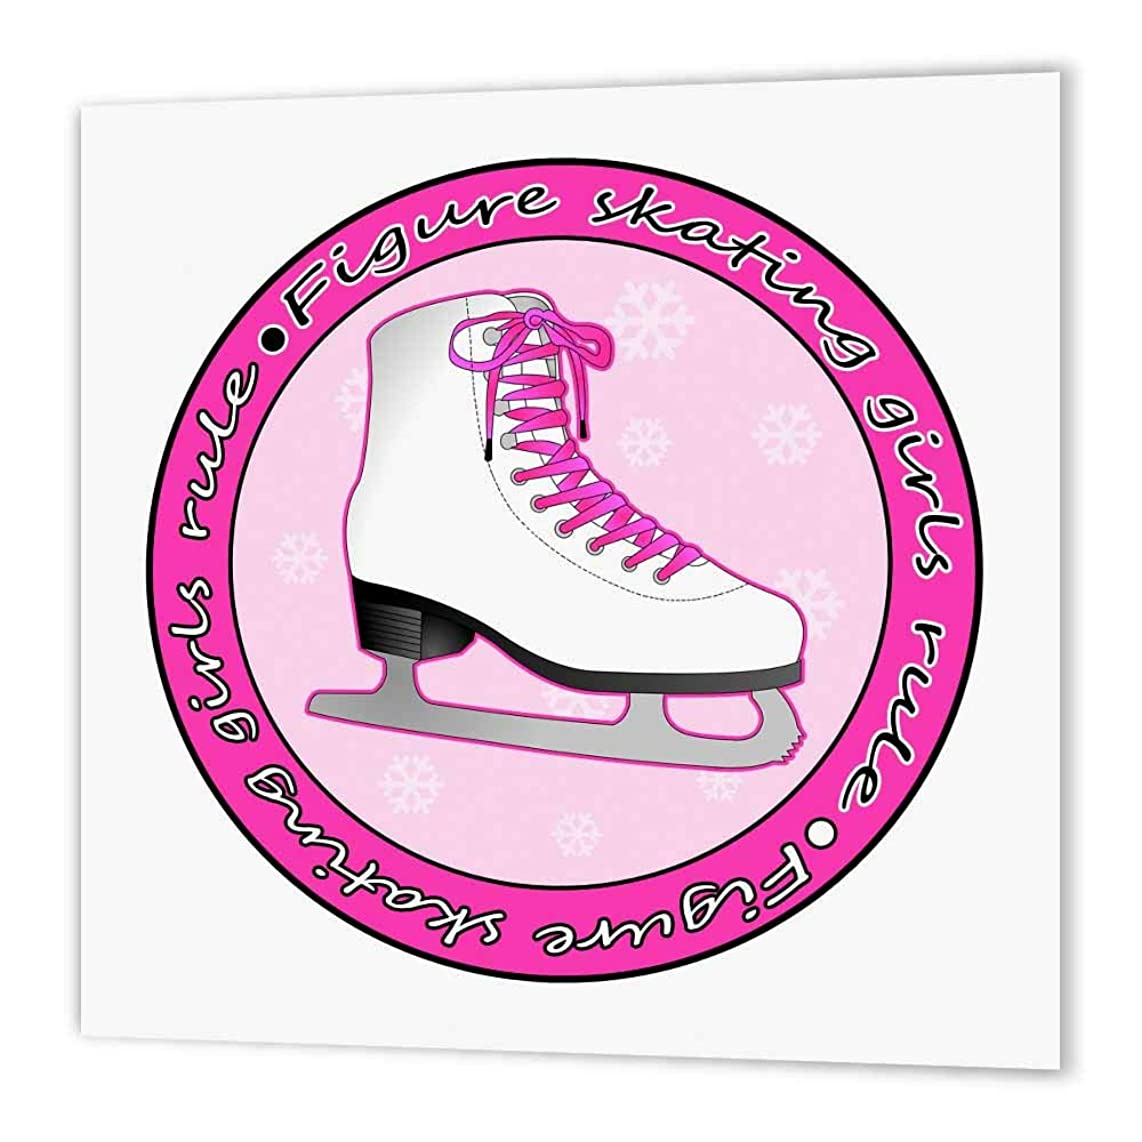 3dRose ht_77469_2 Figure Skating Girls Rule Pink Skate-Iron on Heat Transfer for Material, 6 by 6-Inch, White